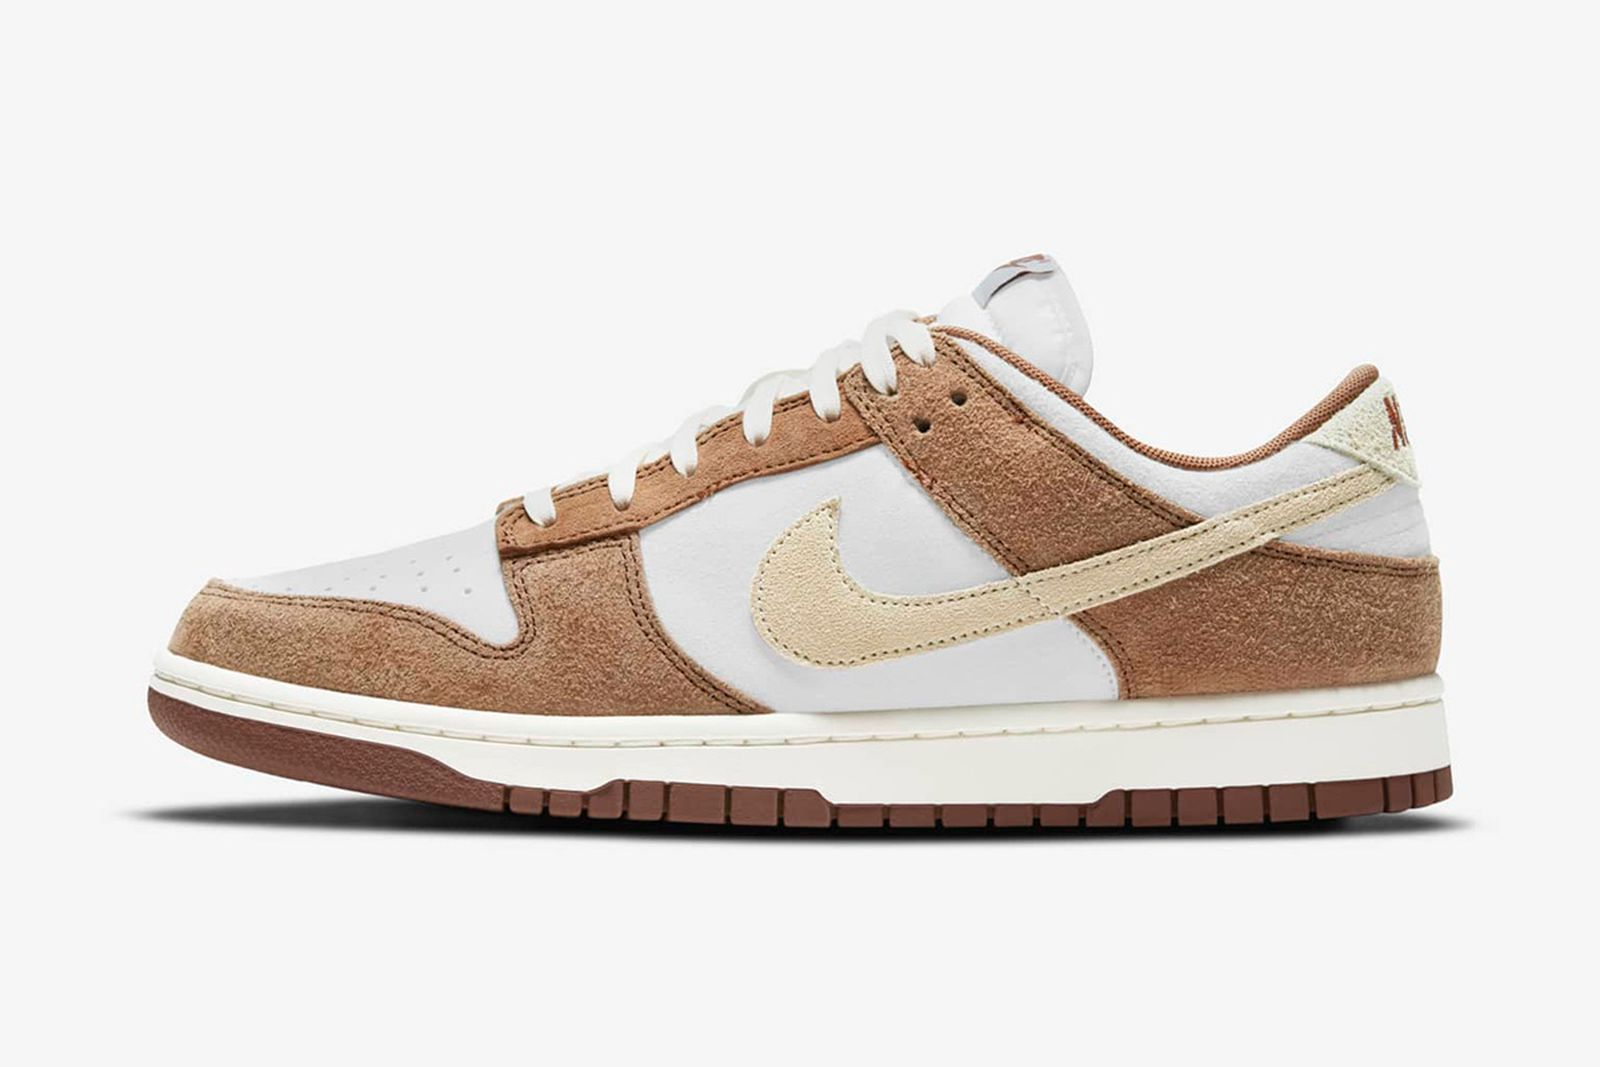 nike-dunk-low-medium-curry-release-info-06